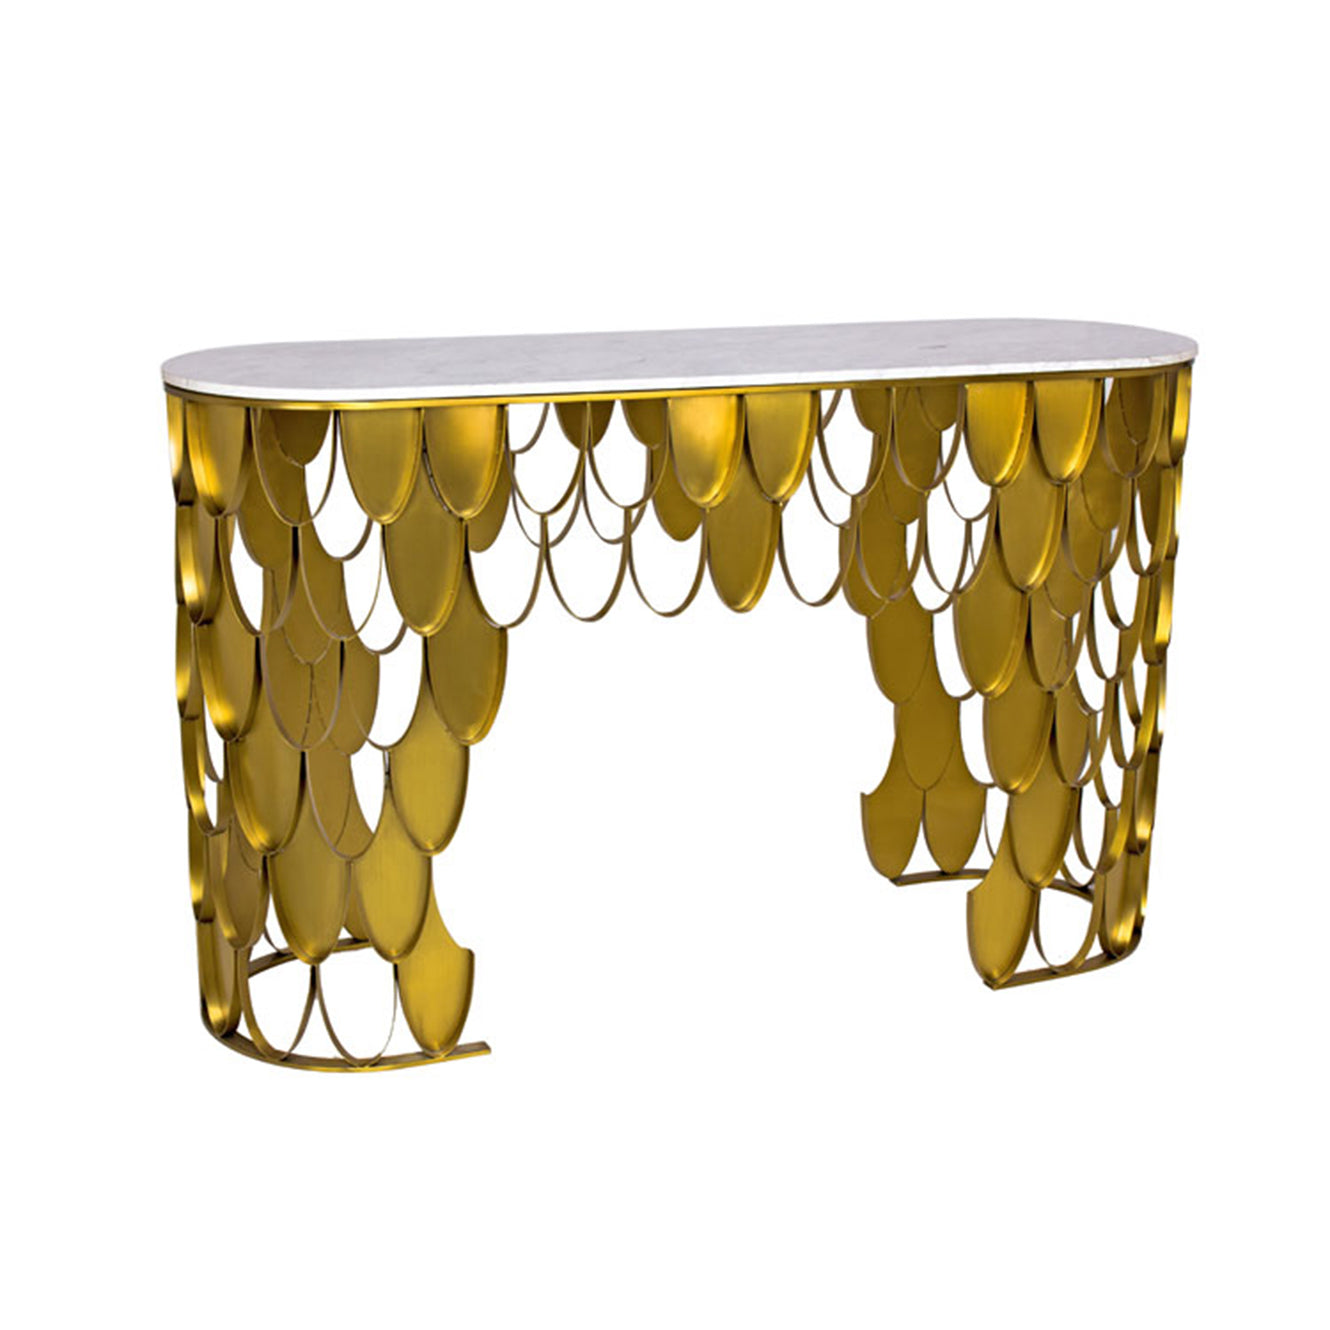 Marble Top Console Table with Mermaid Frame, Gold